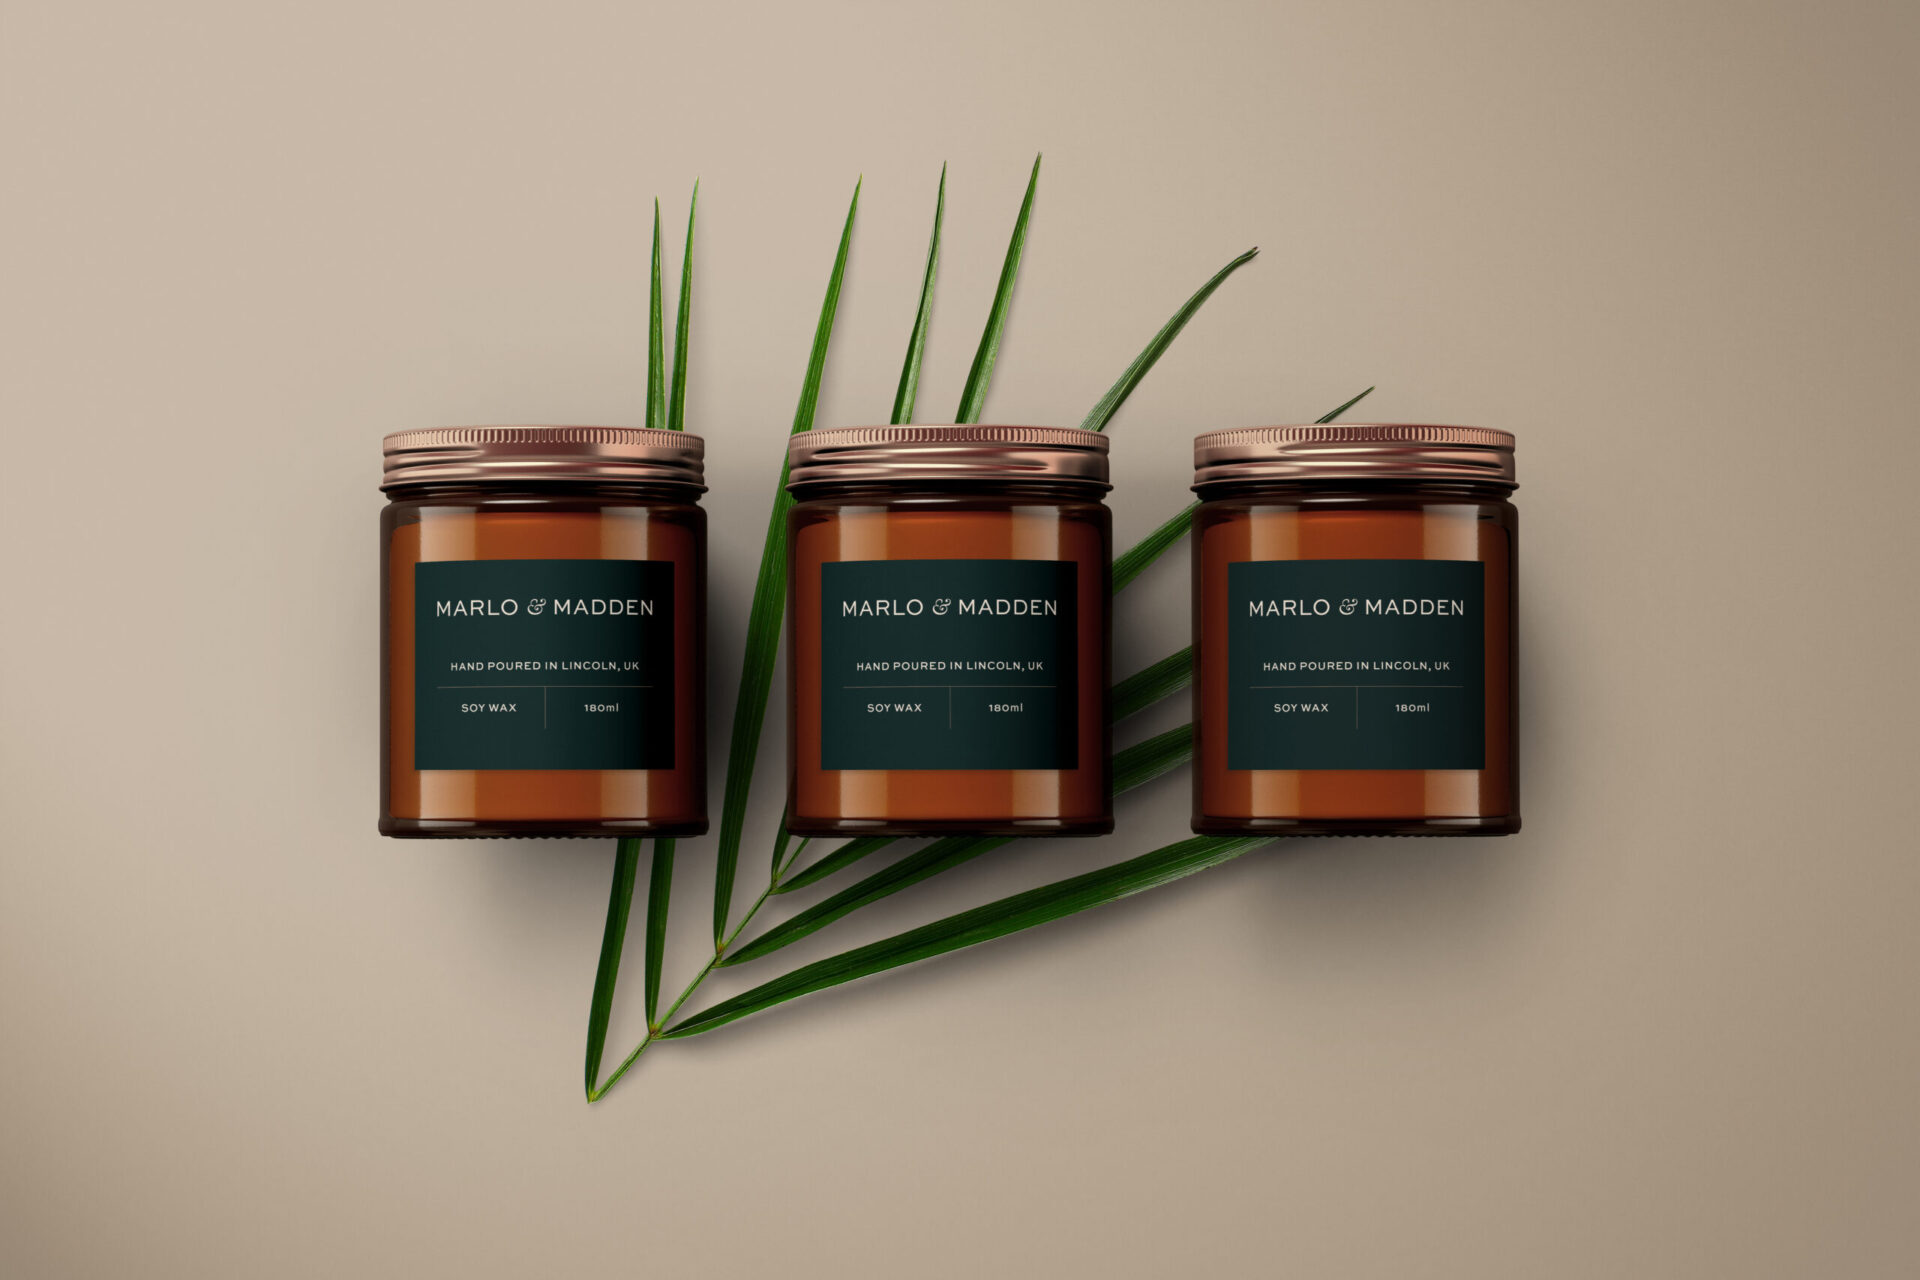 Marlo & Madden packaging design work